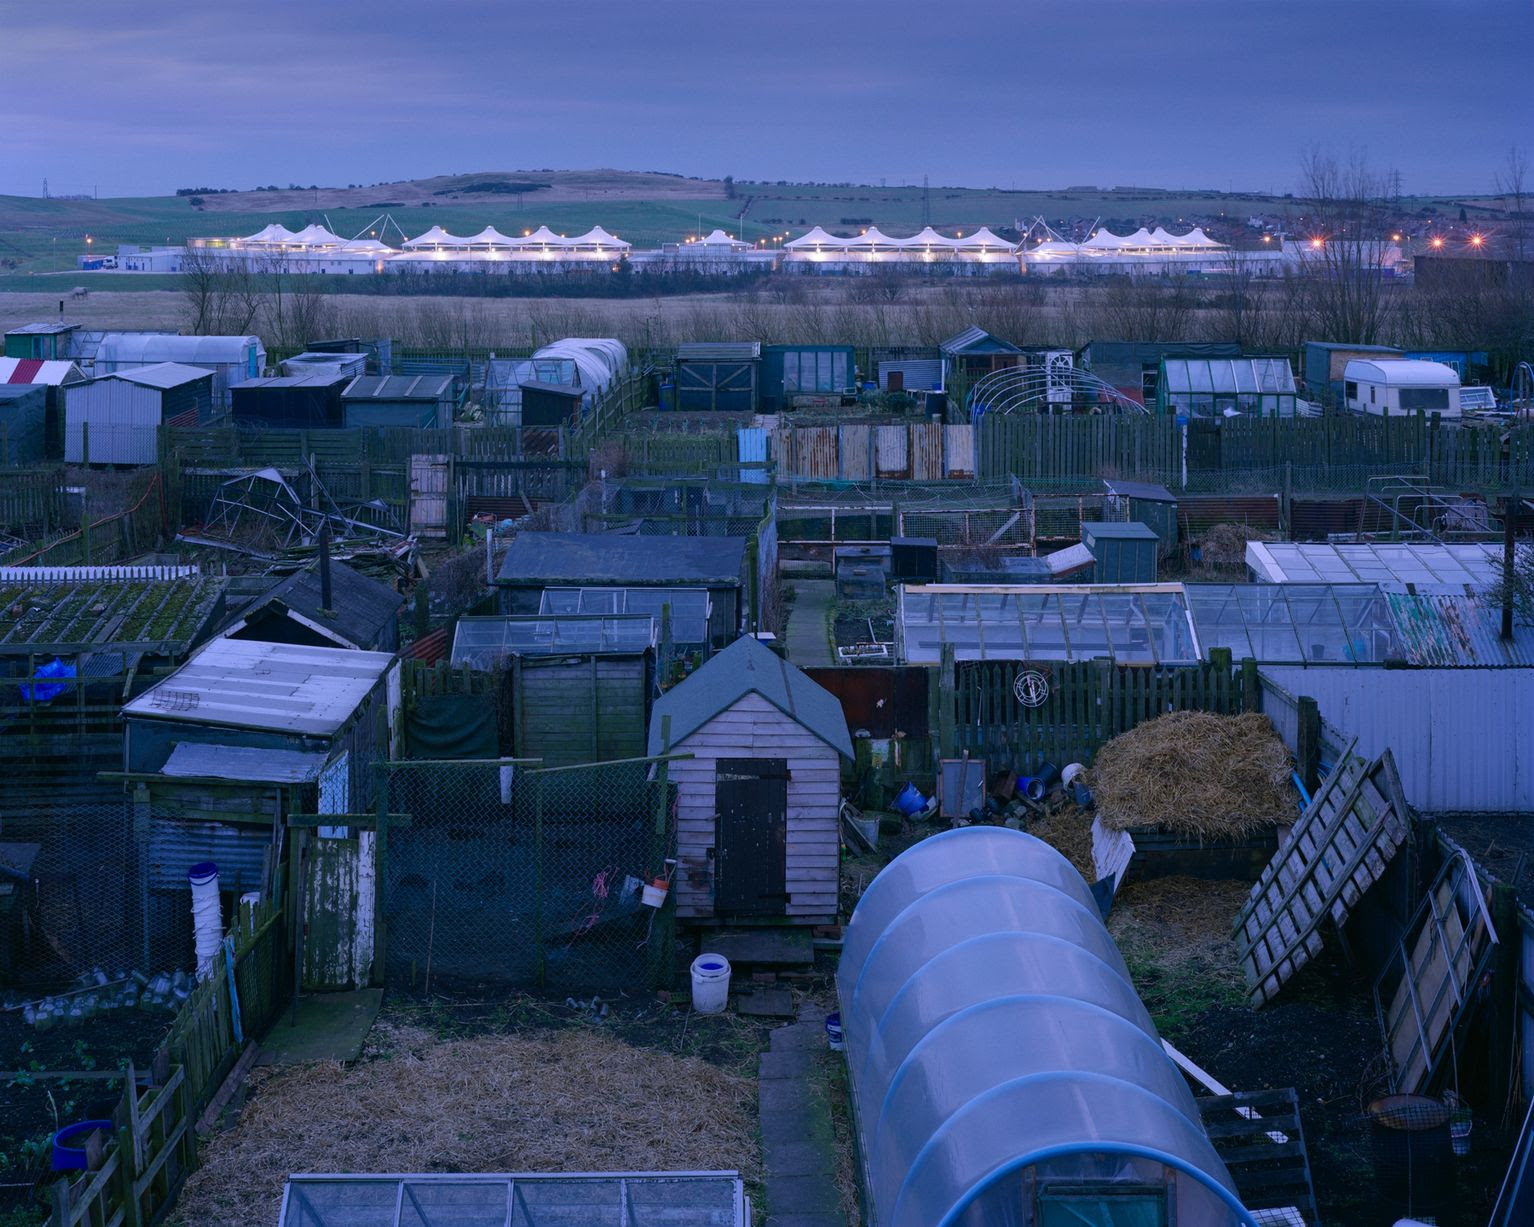 Dalton Park, 2005, by Simon Norfolk, from the exhibition For Ever Amber at Newcastle's Laing Art Gallery